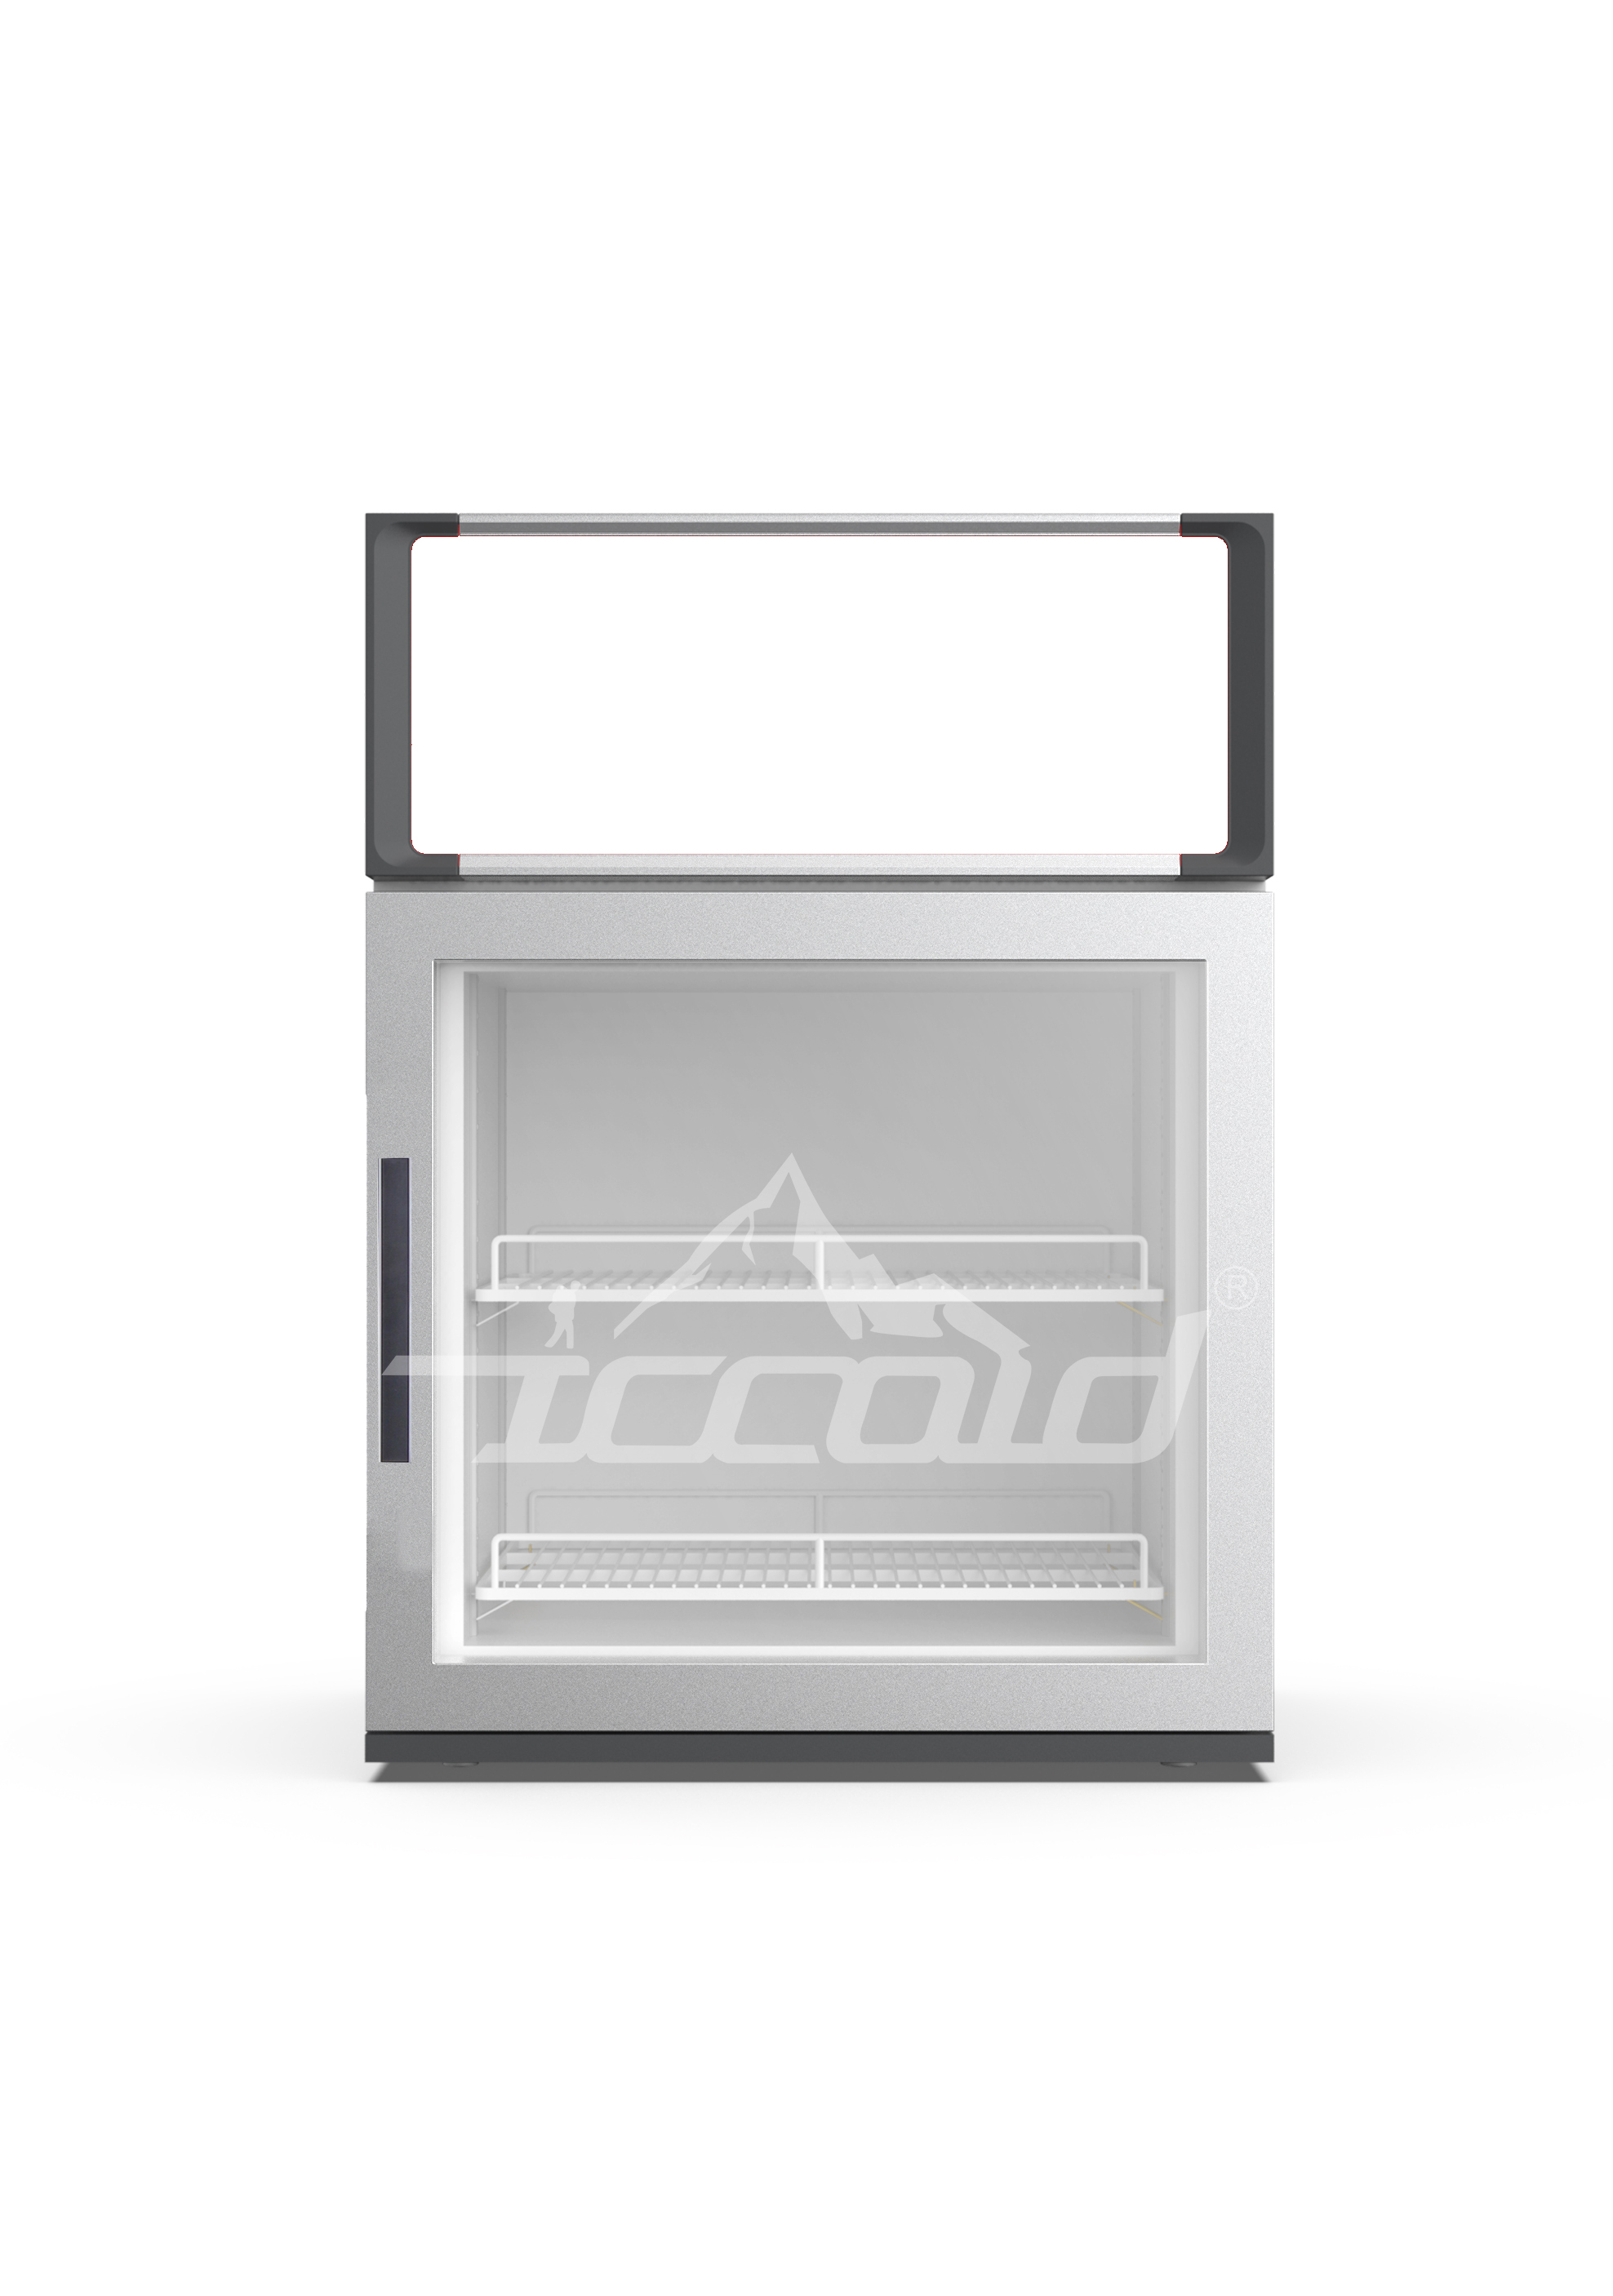 Mini freezer 1door